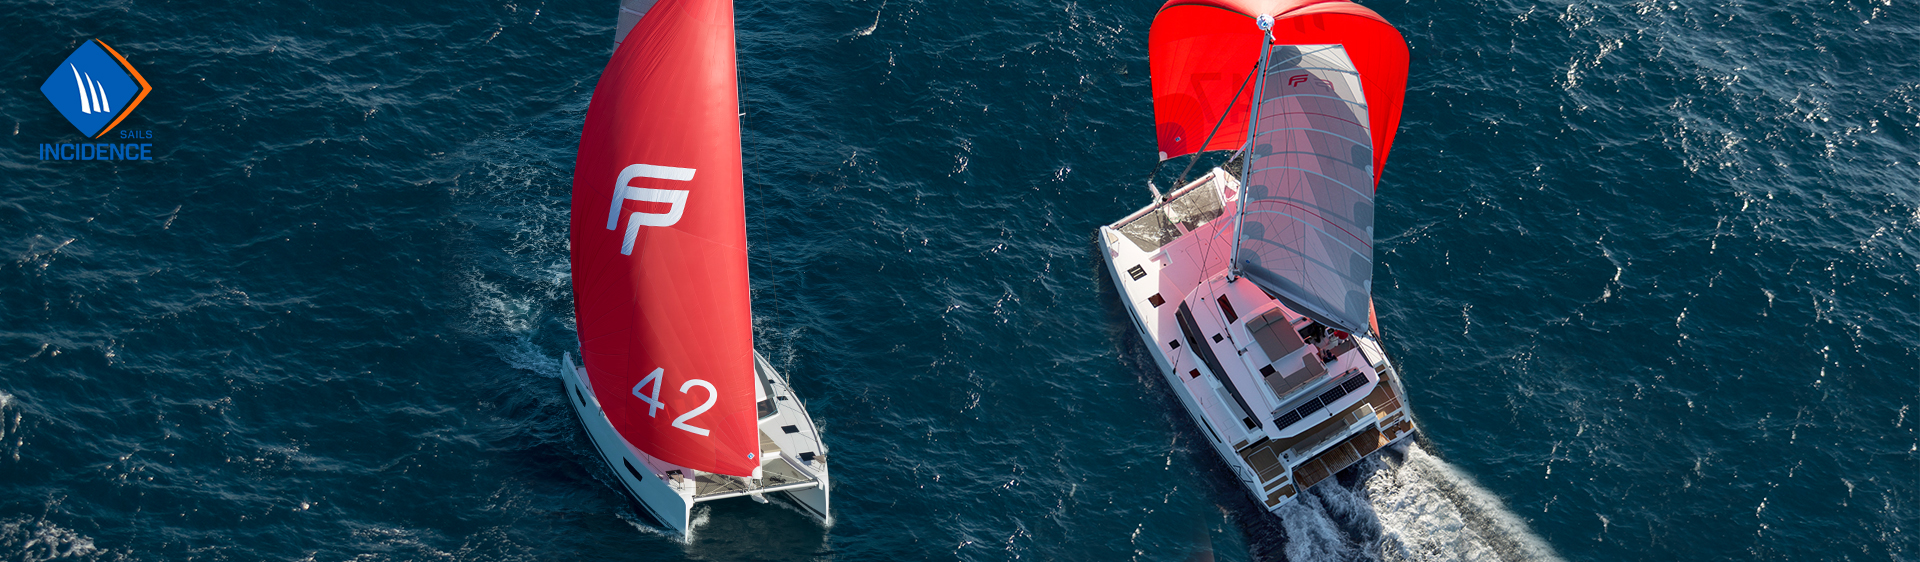 Fountaine-Pajot BP Events